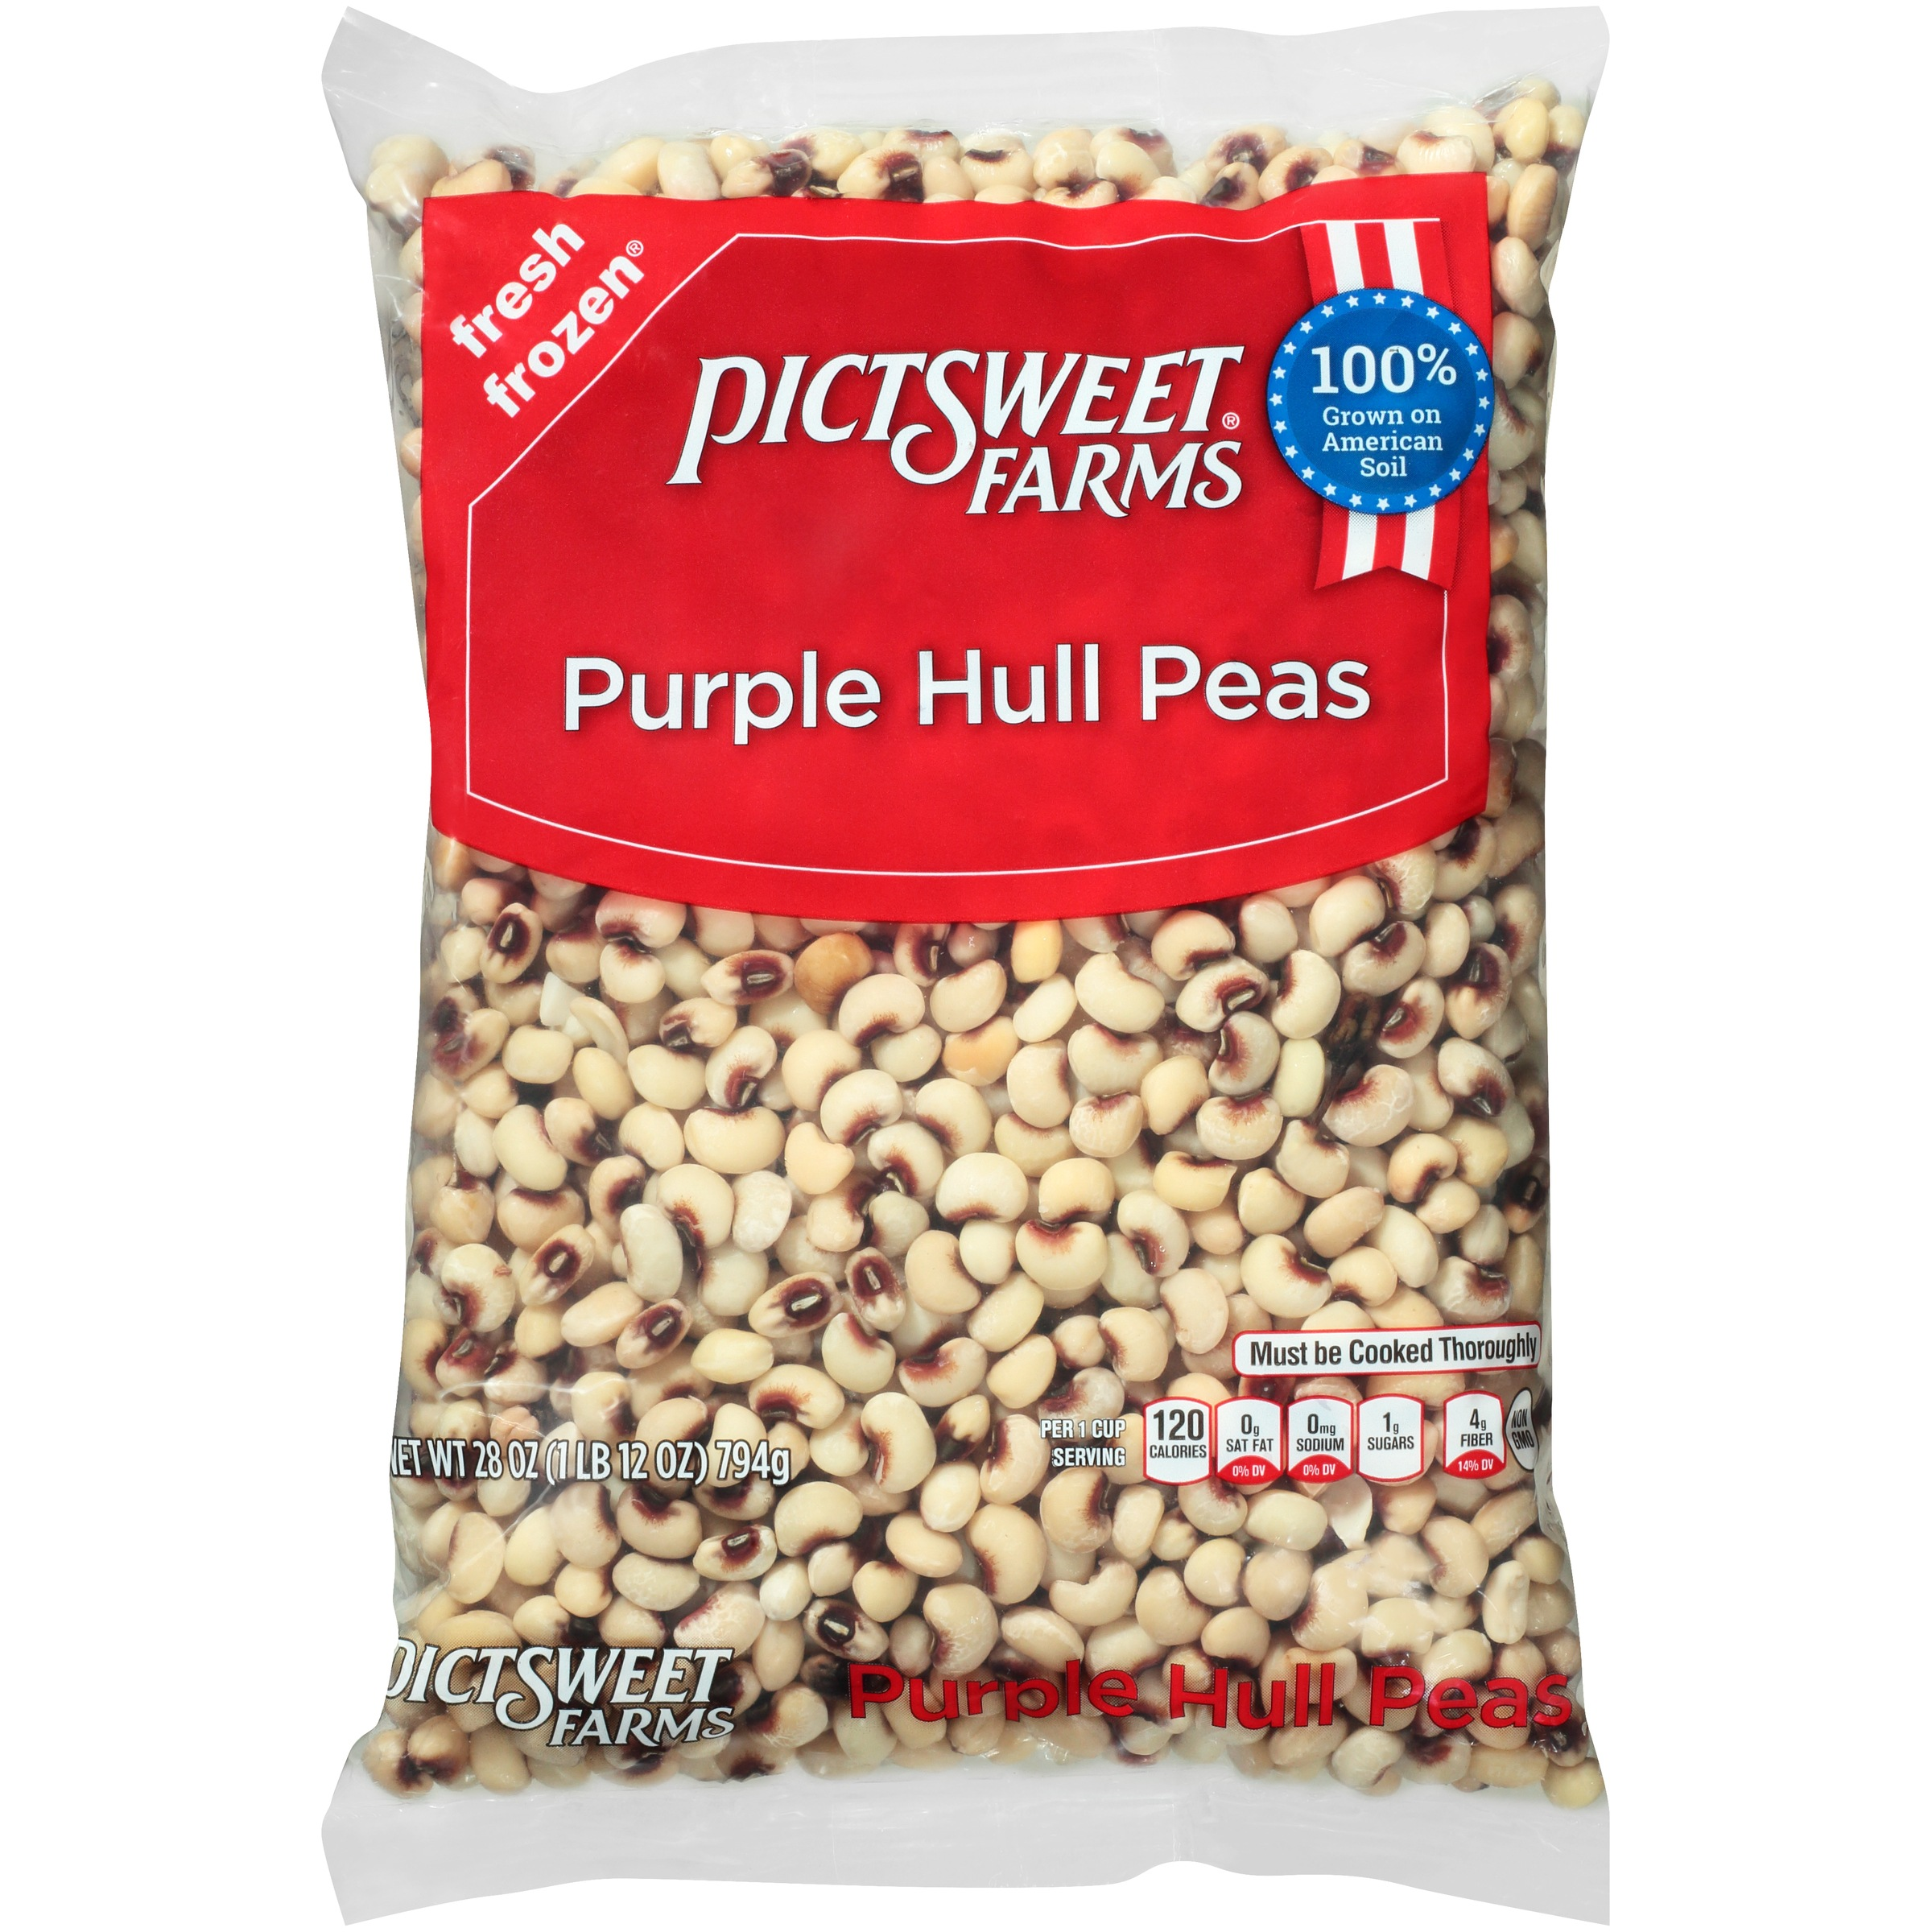 Pictsweet Farms® Purple Hull Peas 28 oz. Bag